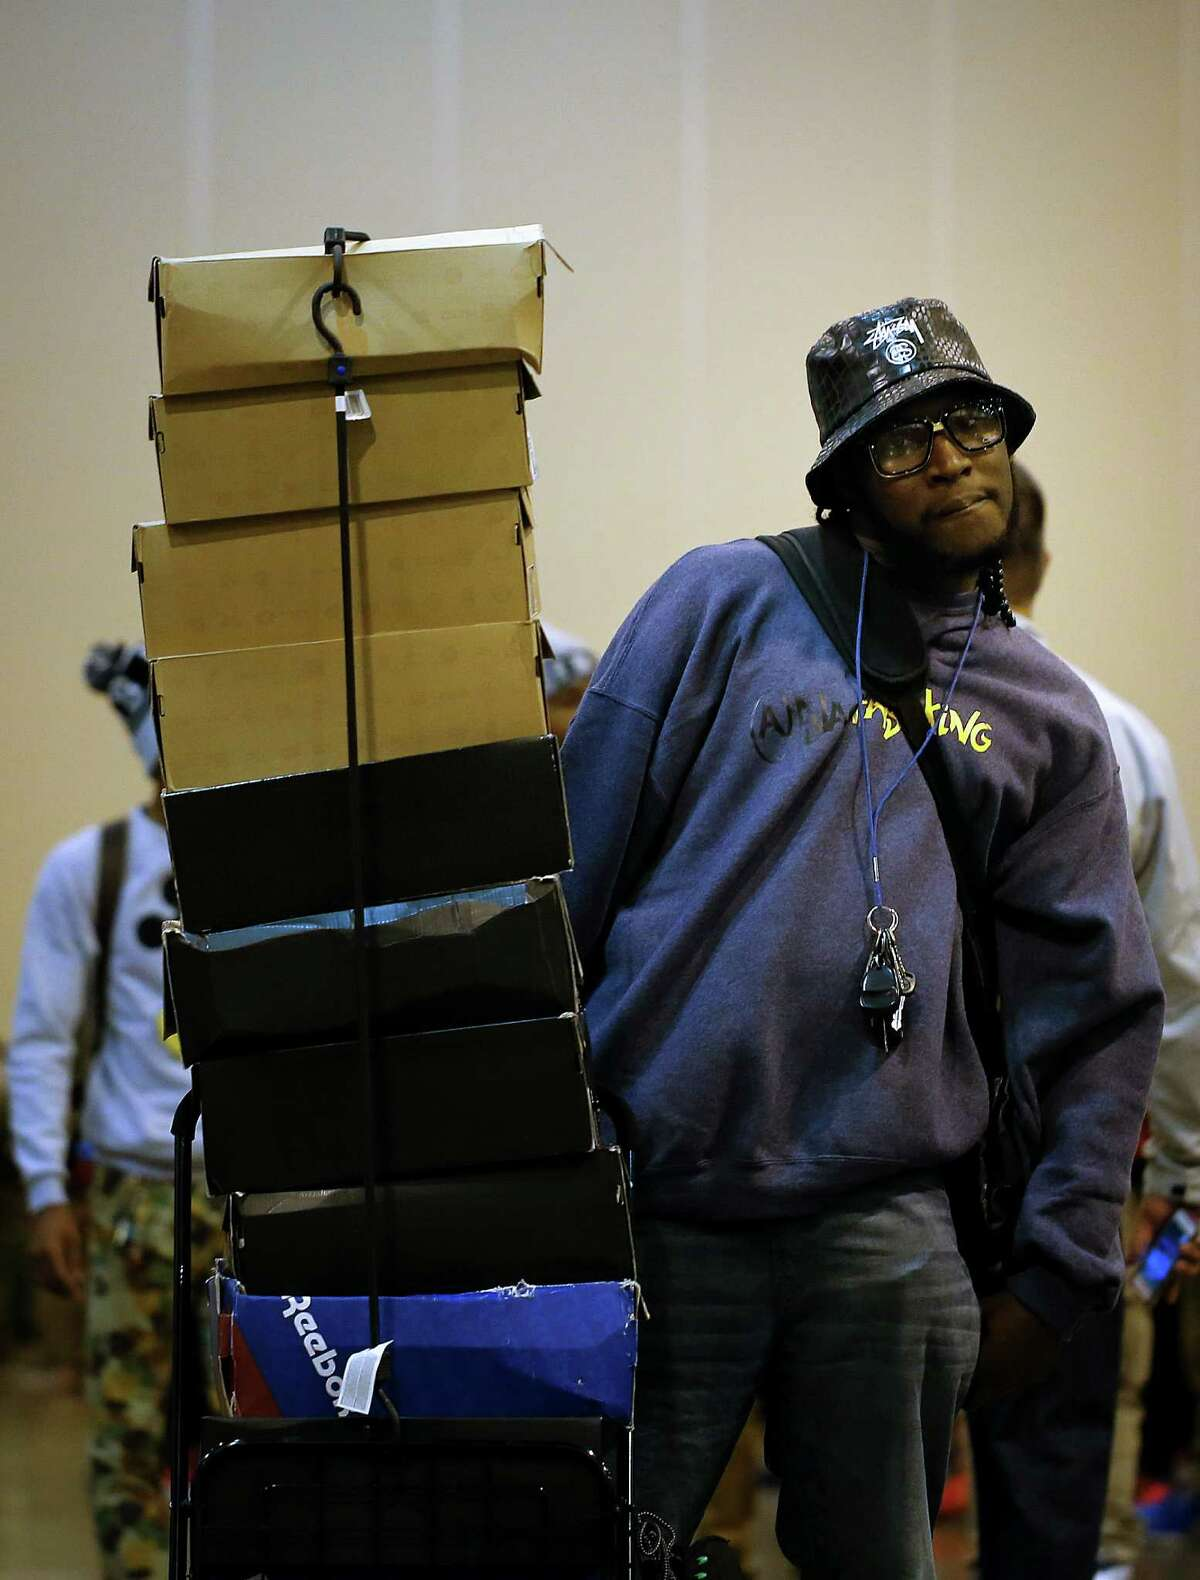 Jay Rotiri poses for a photo next to his cart of shoes for sale, stacked tall, during the 2013 fall Sneaker Summit.